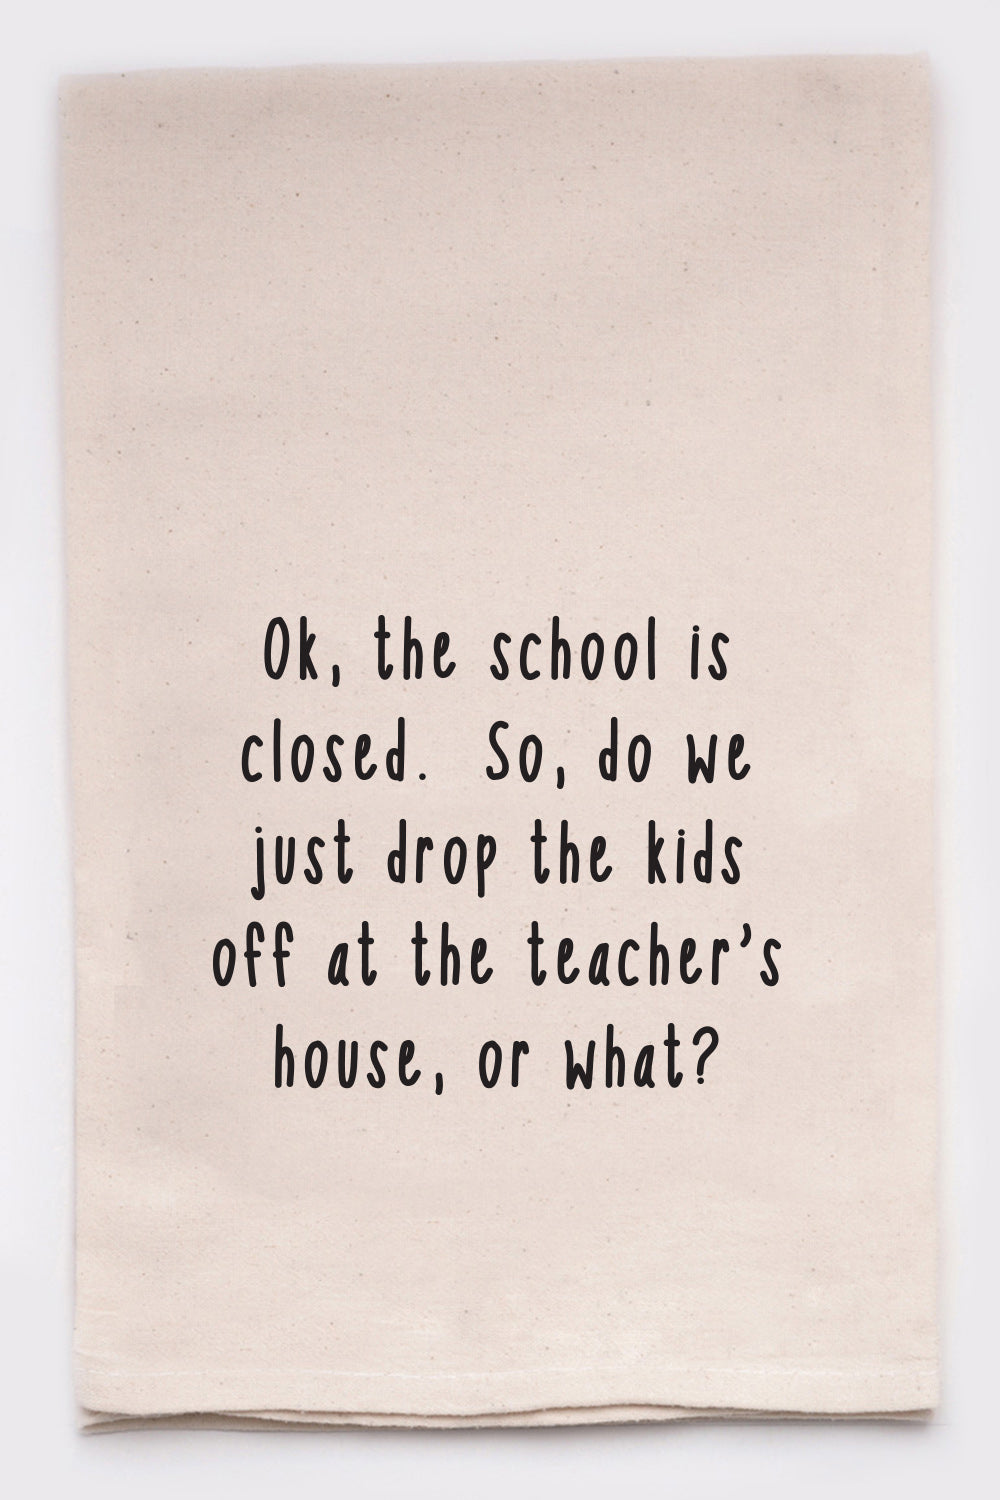 Ok, the school is closed. So, do we just drop the kids off at the teacher's house, or what?